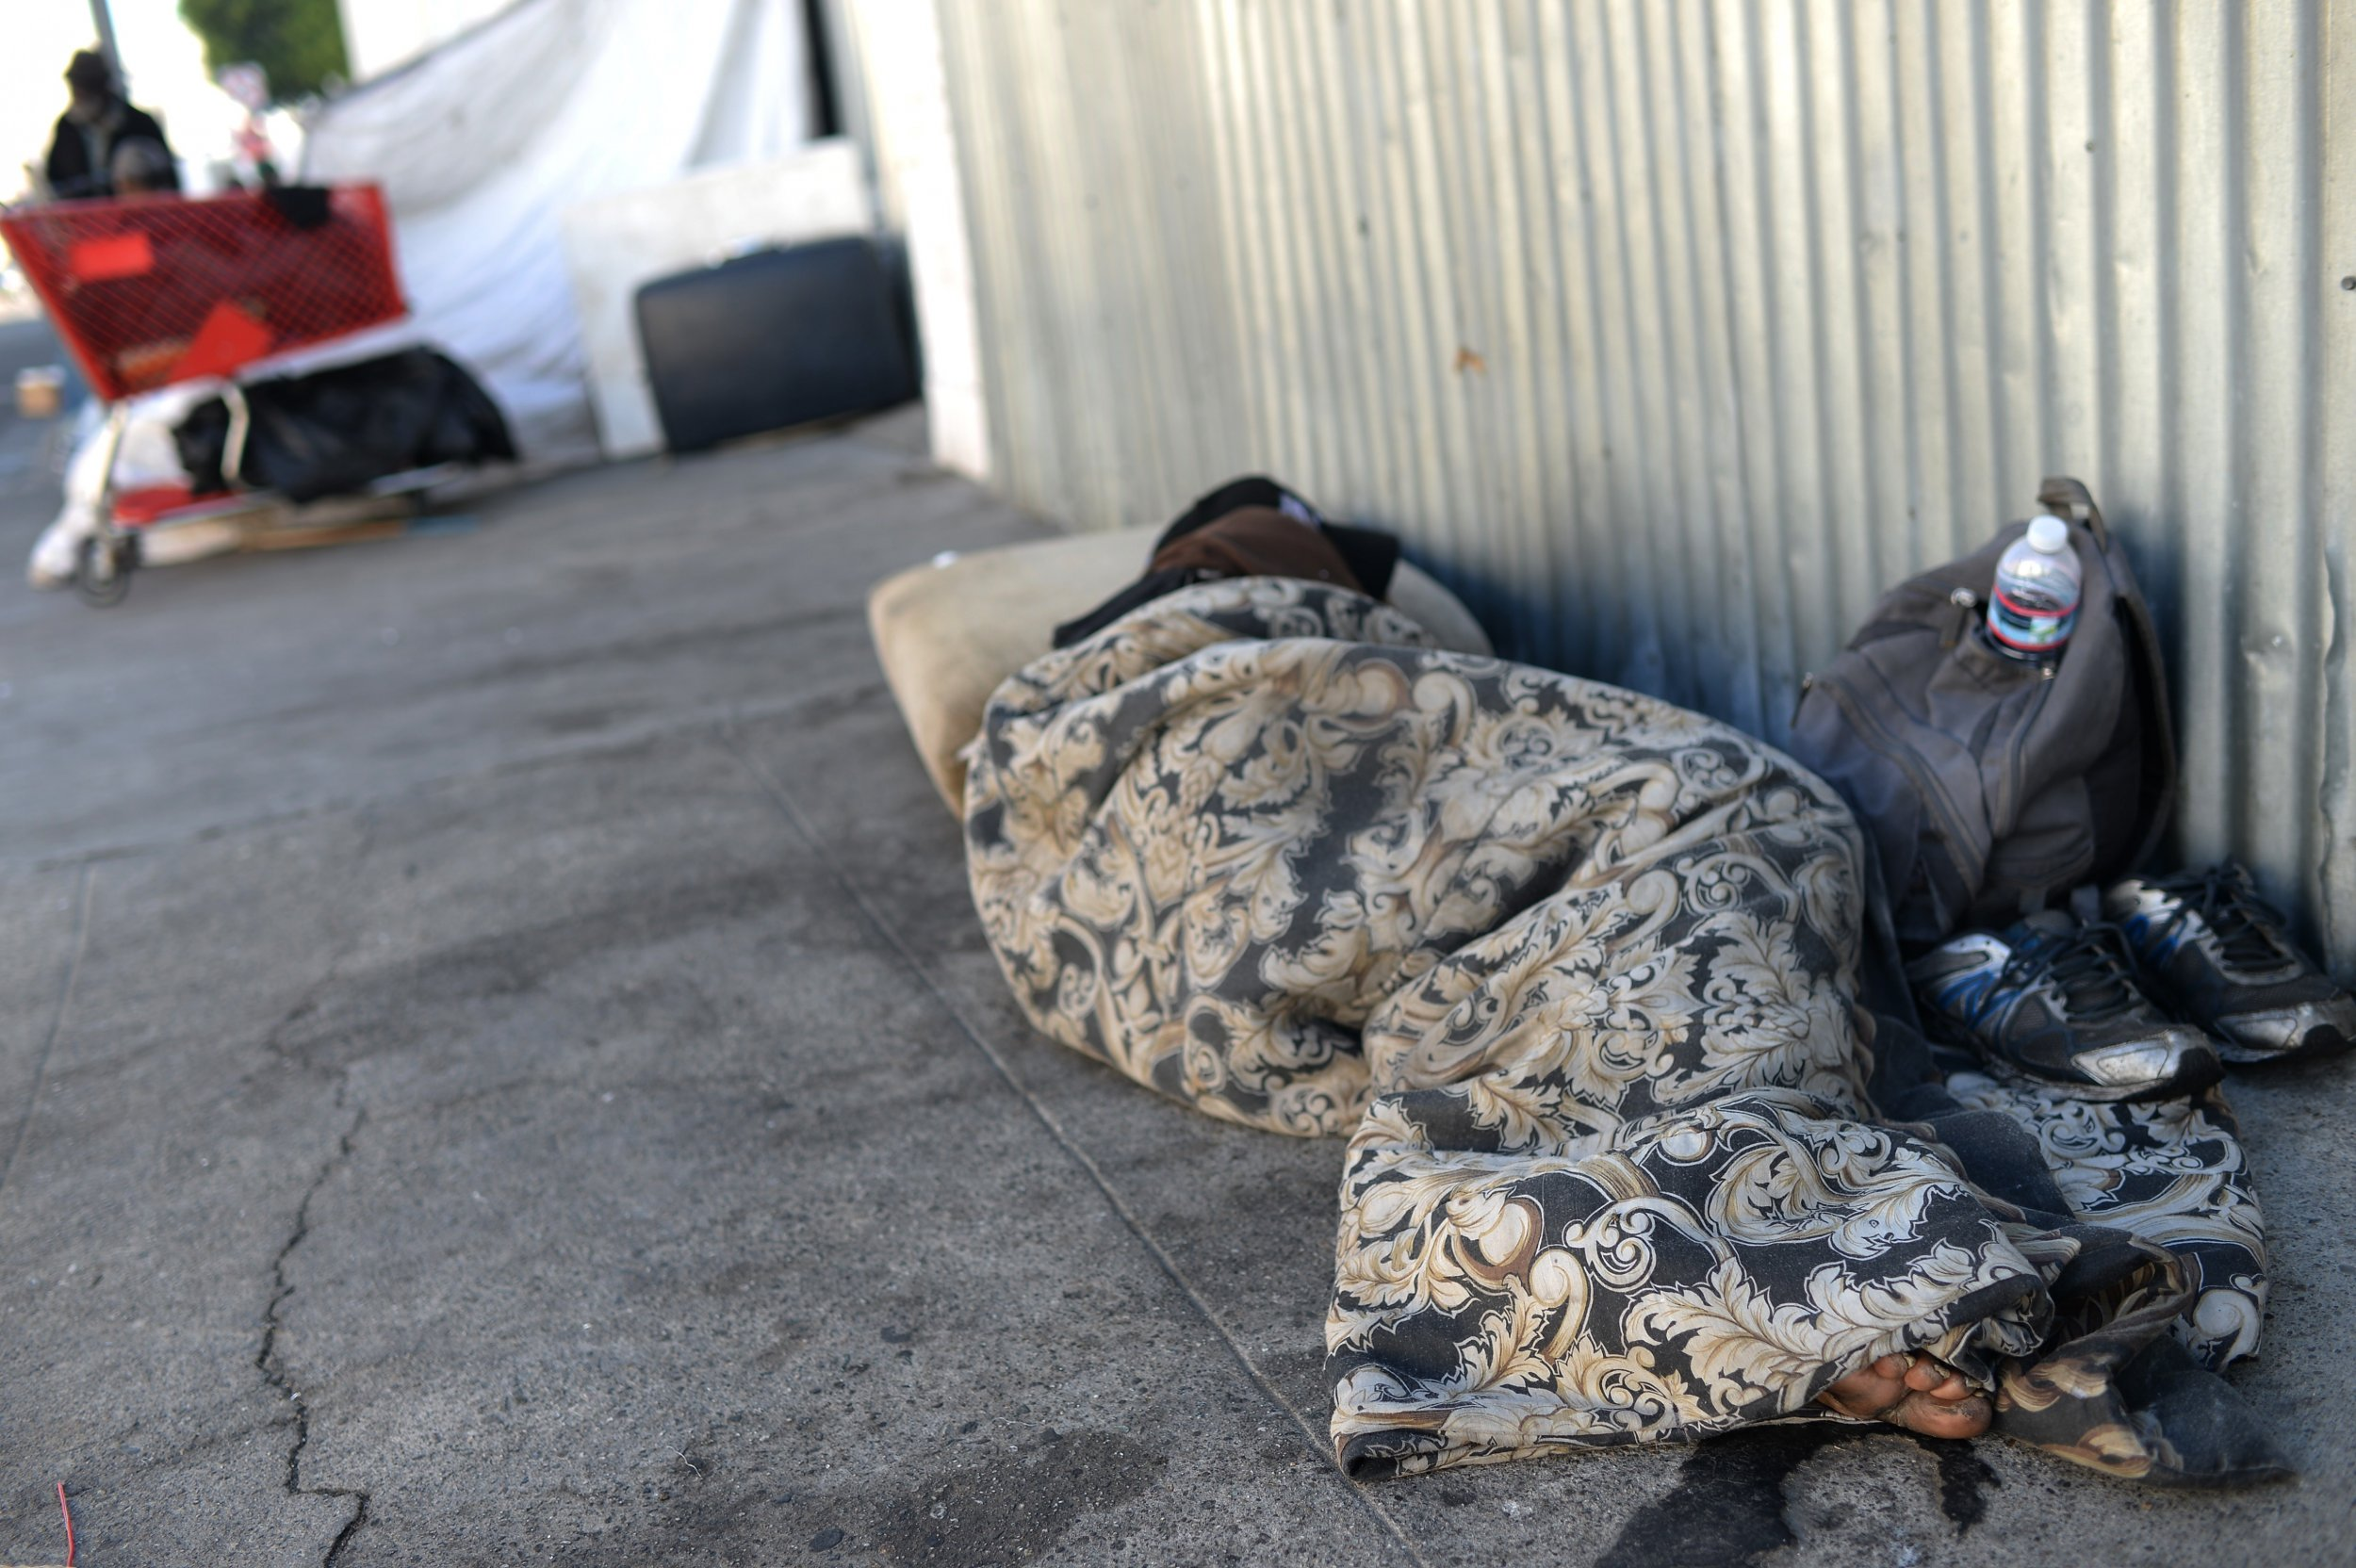 Officials are pointing fingers at the West Coast affordable housing crisis for the number of homeless people dying